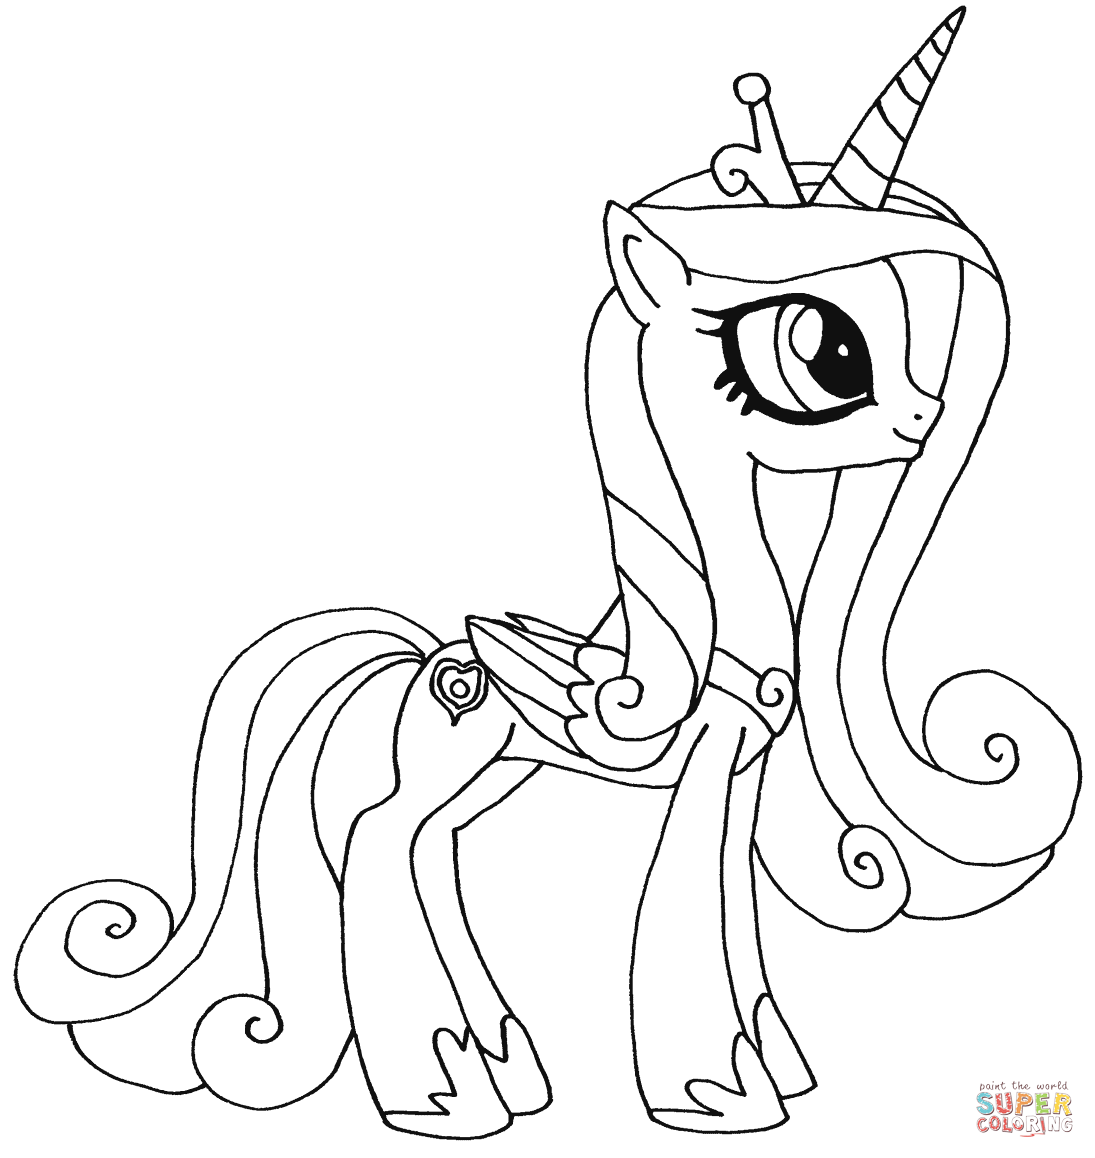 Princess Celestia coloring page | Free Printable Coloring Pages